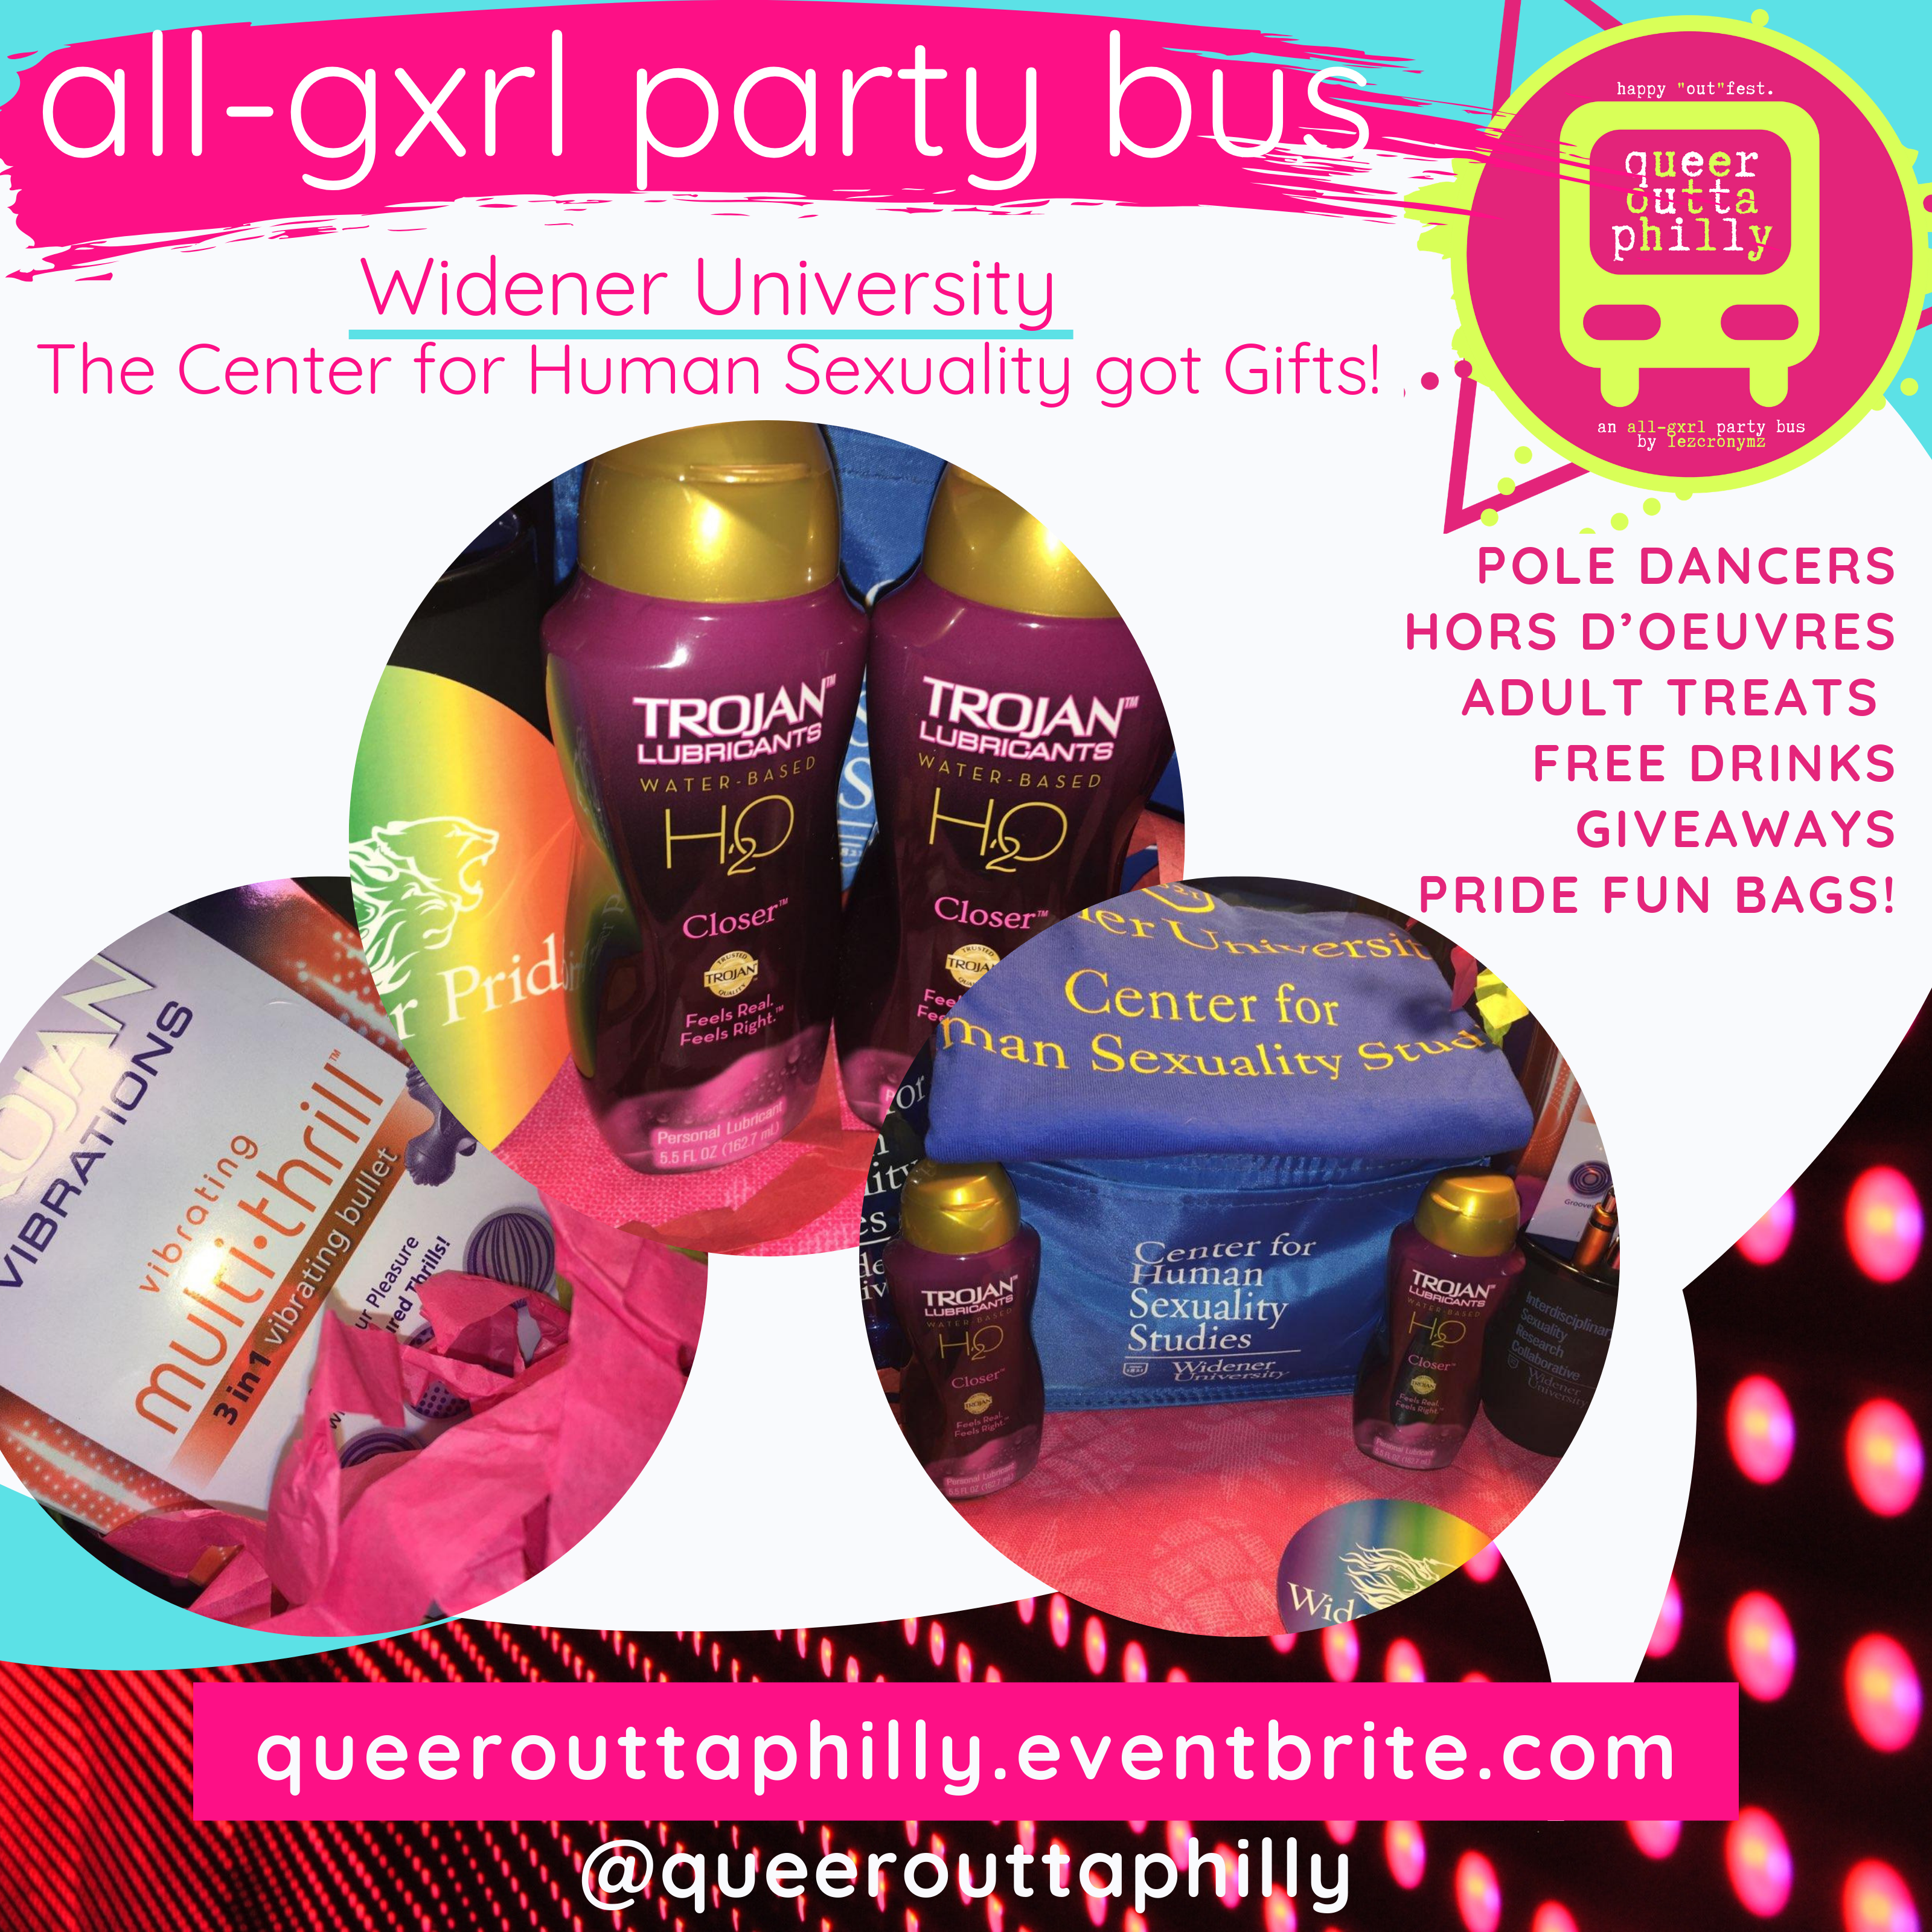 You could win a gift bag provided by the university! Each guest on our Party Bus gets at least one chance to win!